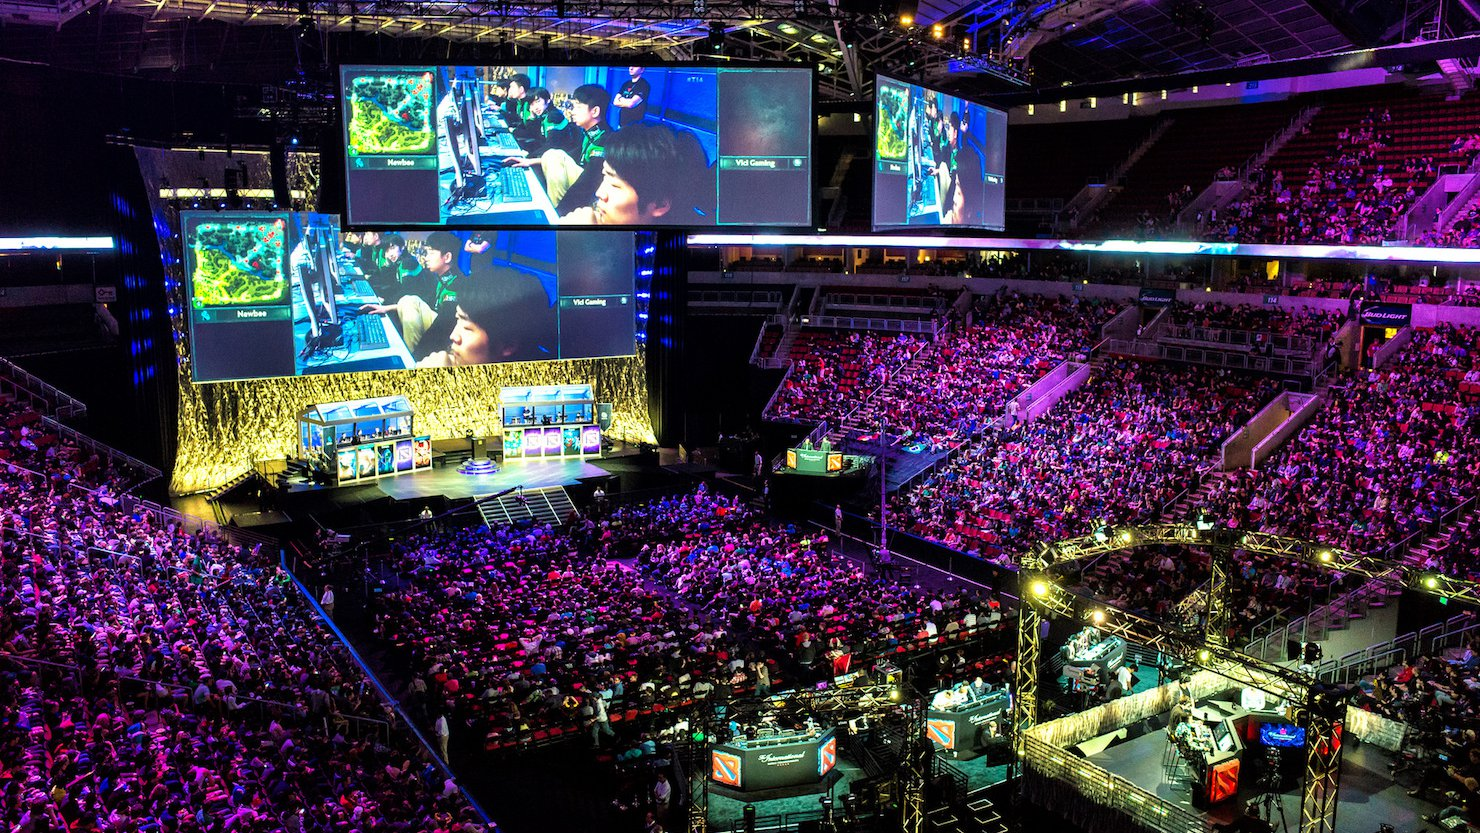 Weekly sports betting news roundup: From eSports to Arizona, progress continues